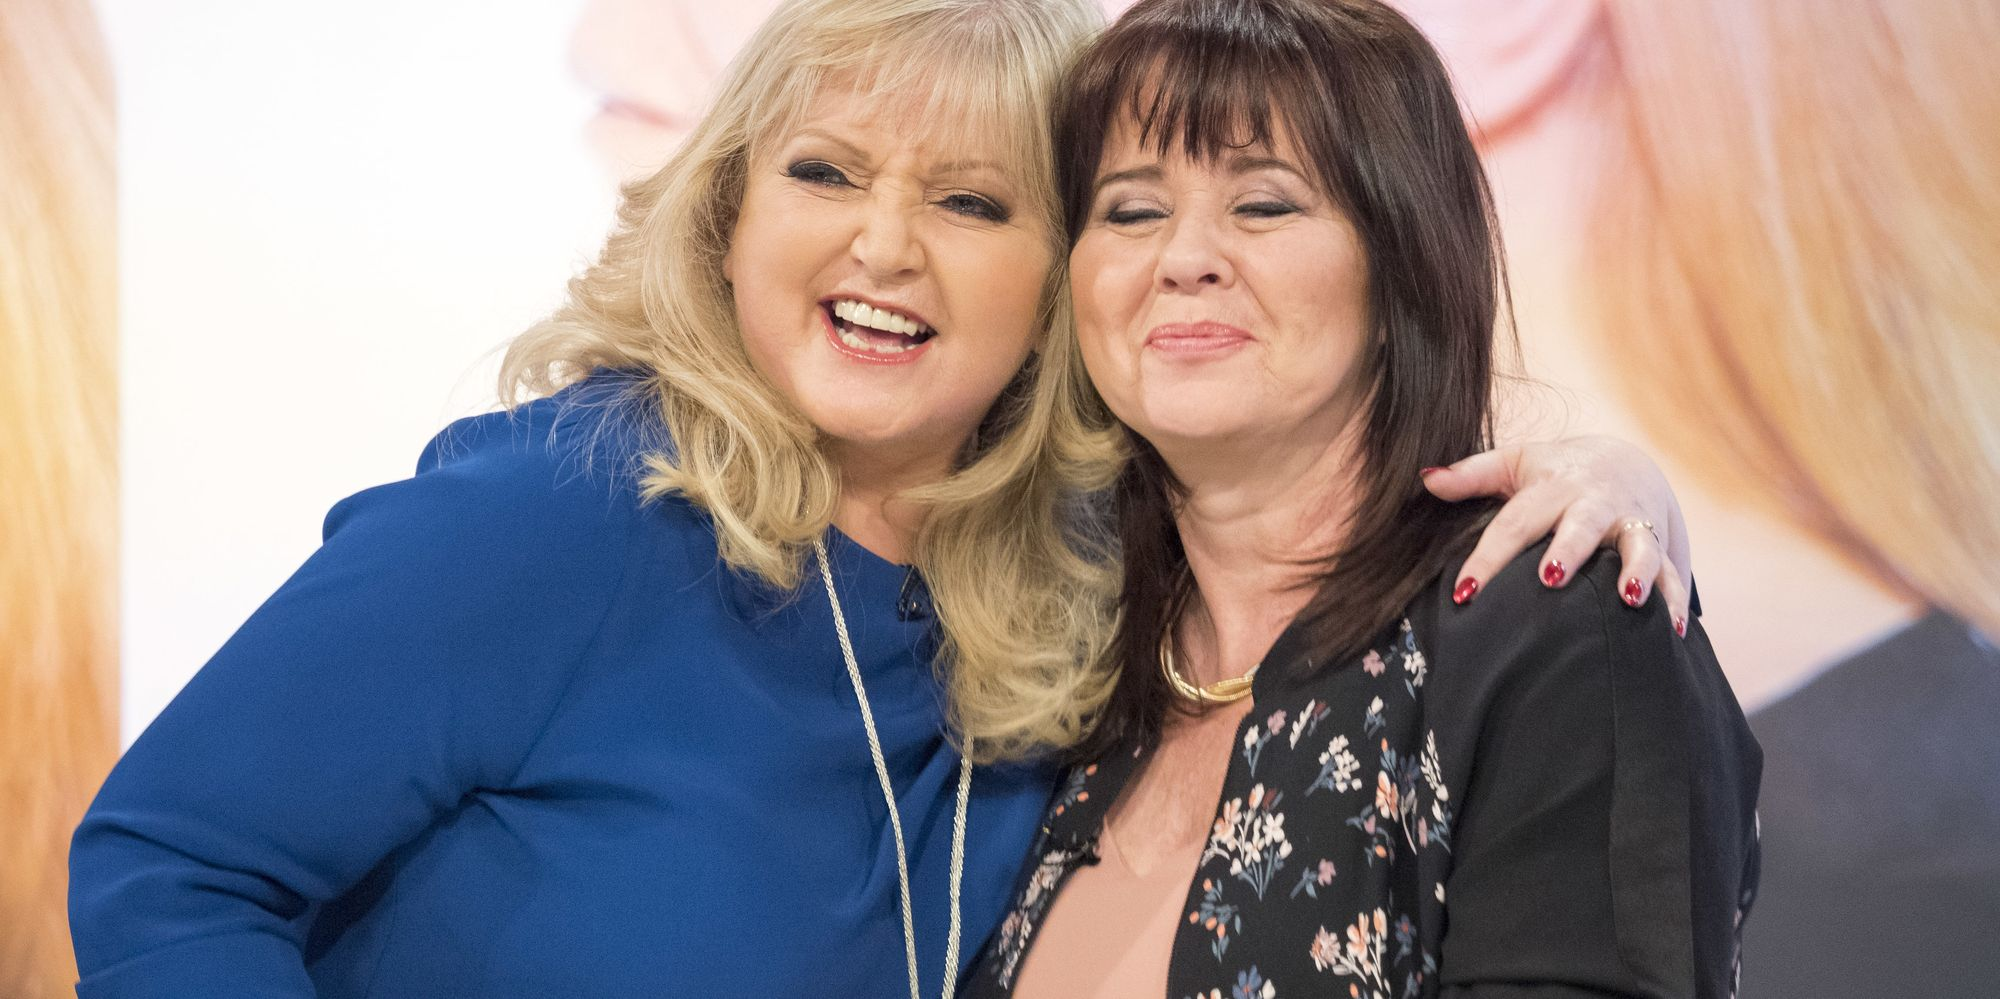 Coleen Nolan Says Sister Linda's Cancer Diagnosis Pushed Her To Take Part In Swimsuit Photo-Shoot